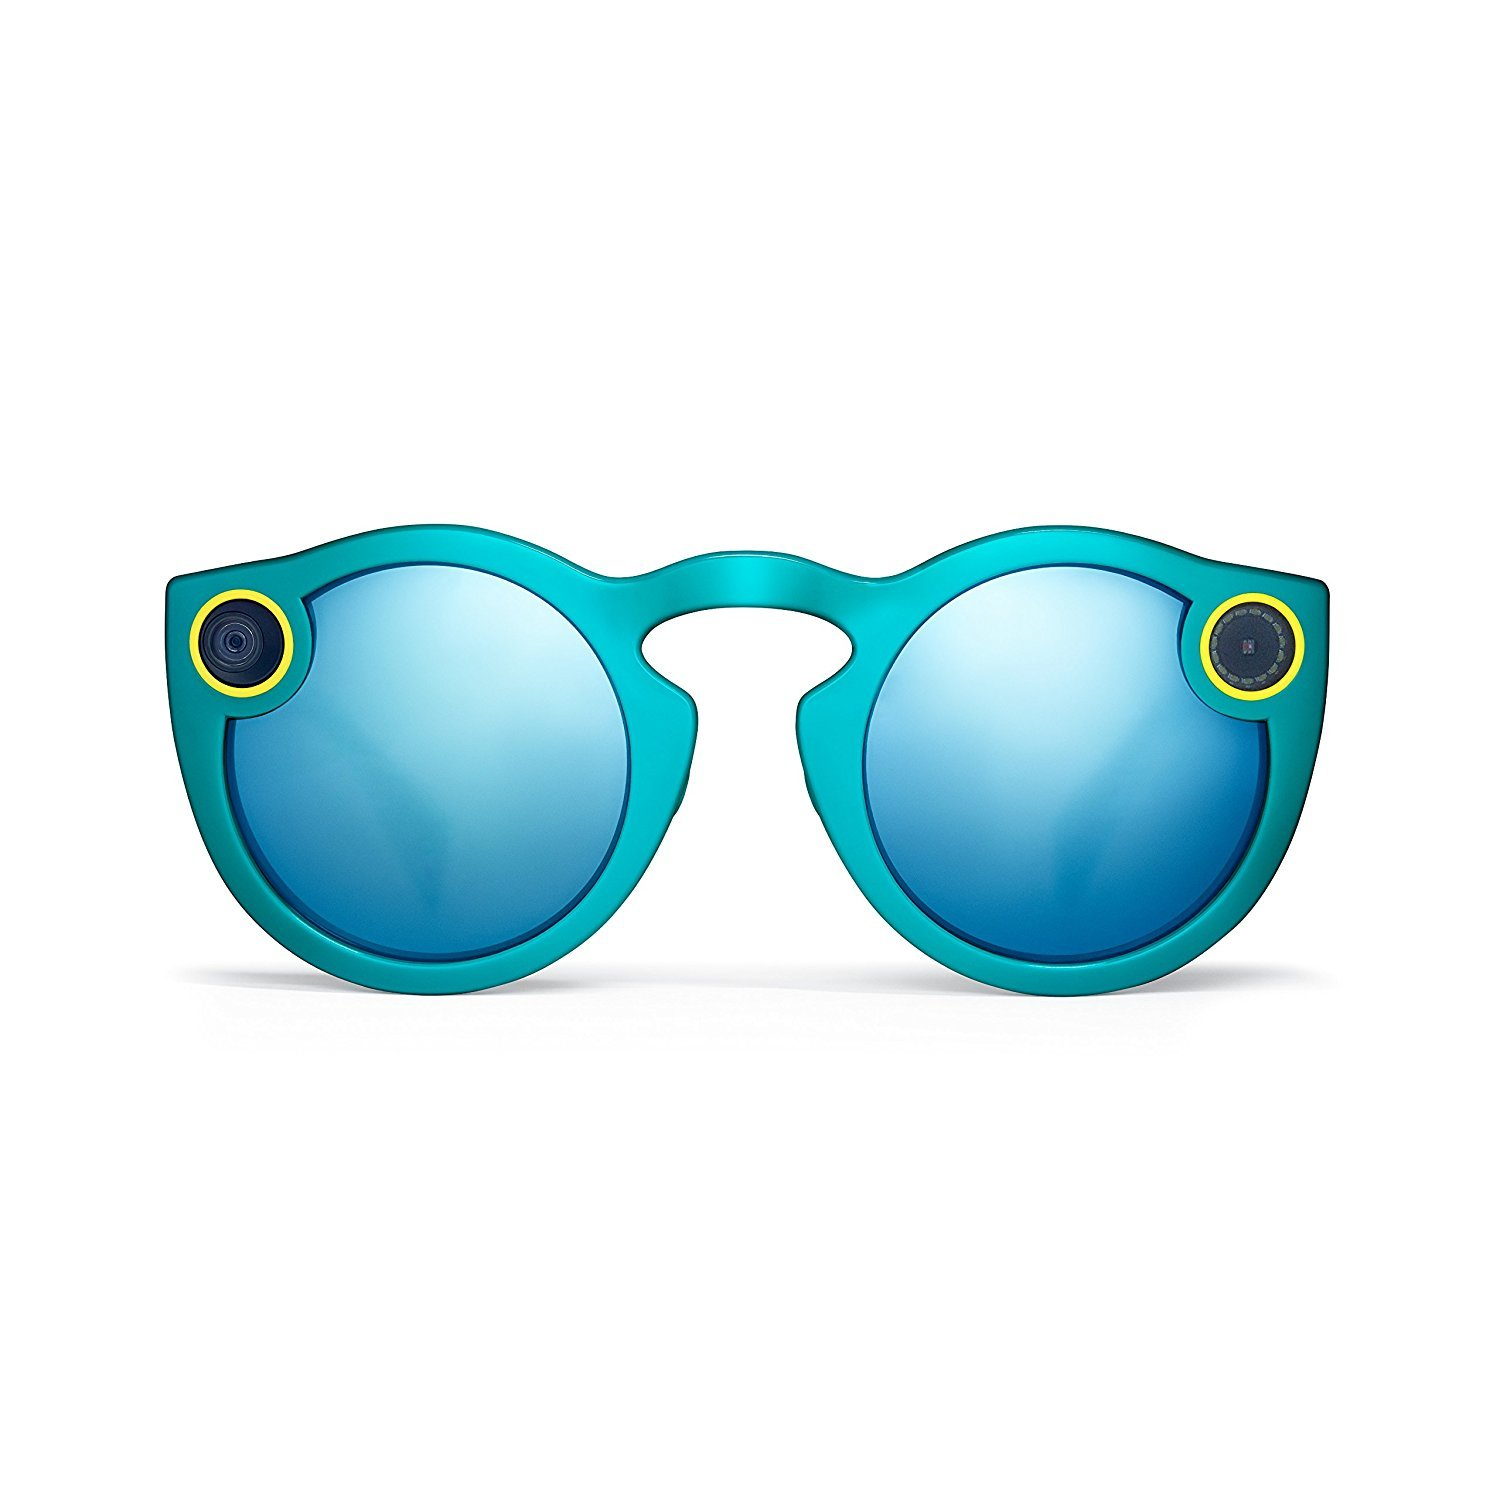 Spectacles - Sunglasses that Snap!